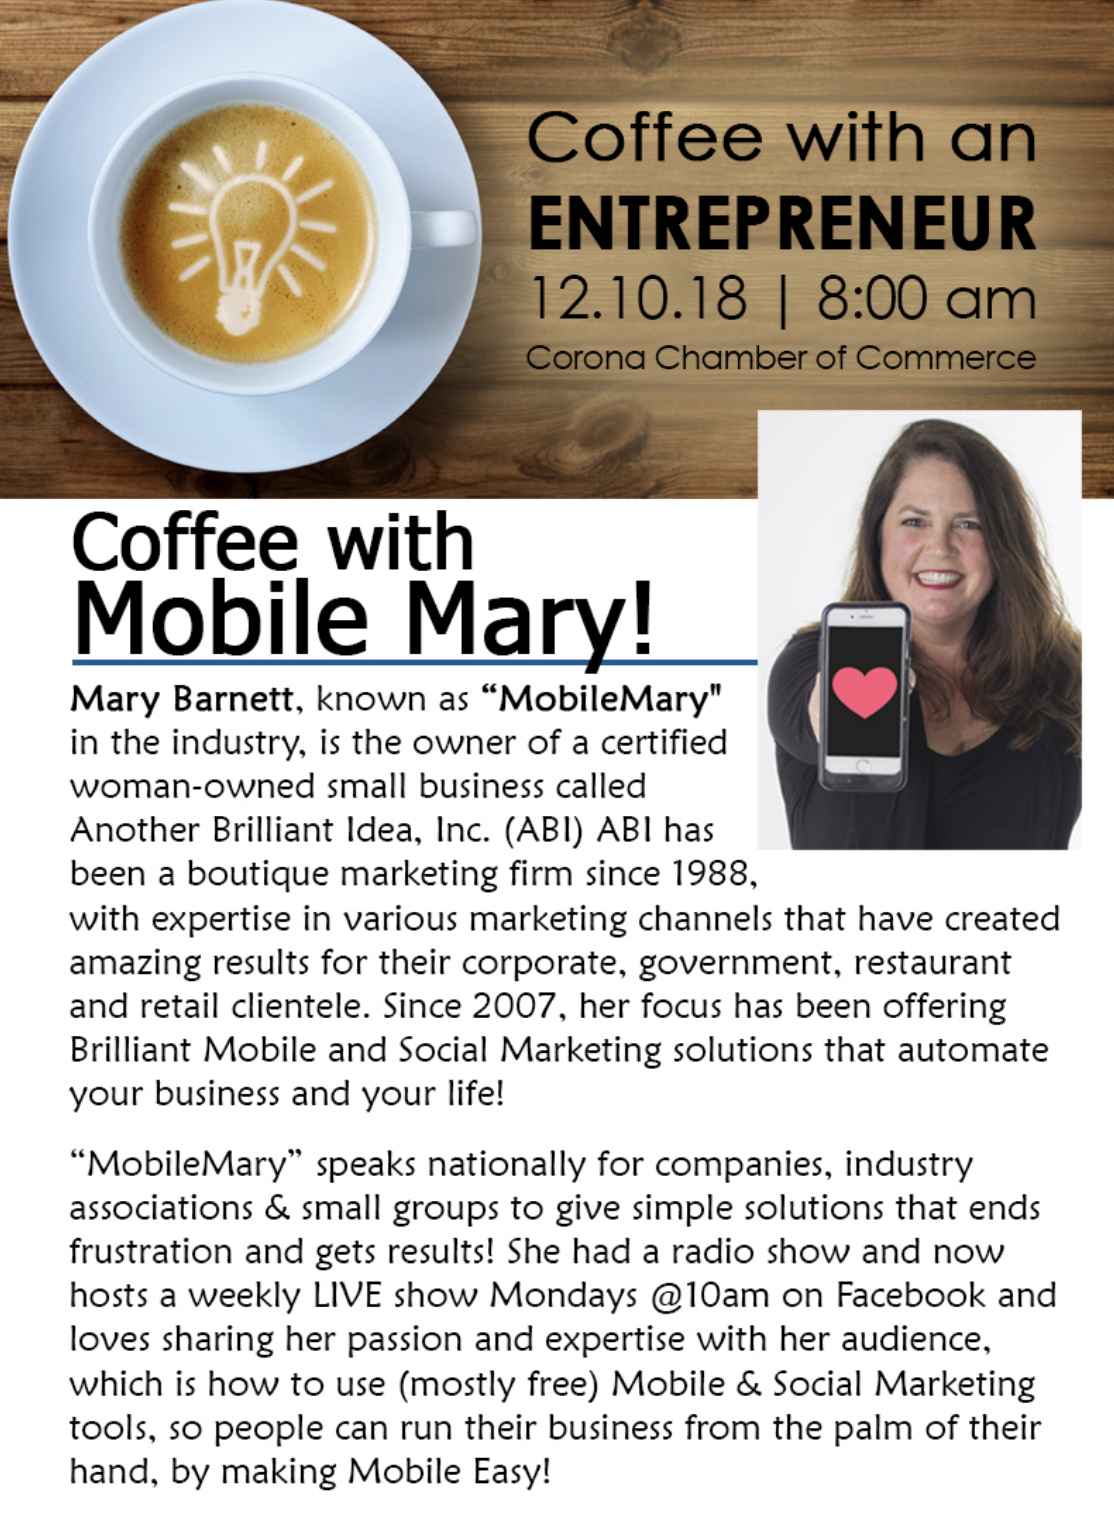 Coffee with an Entrepreneur